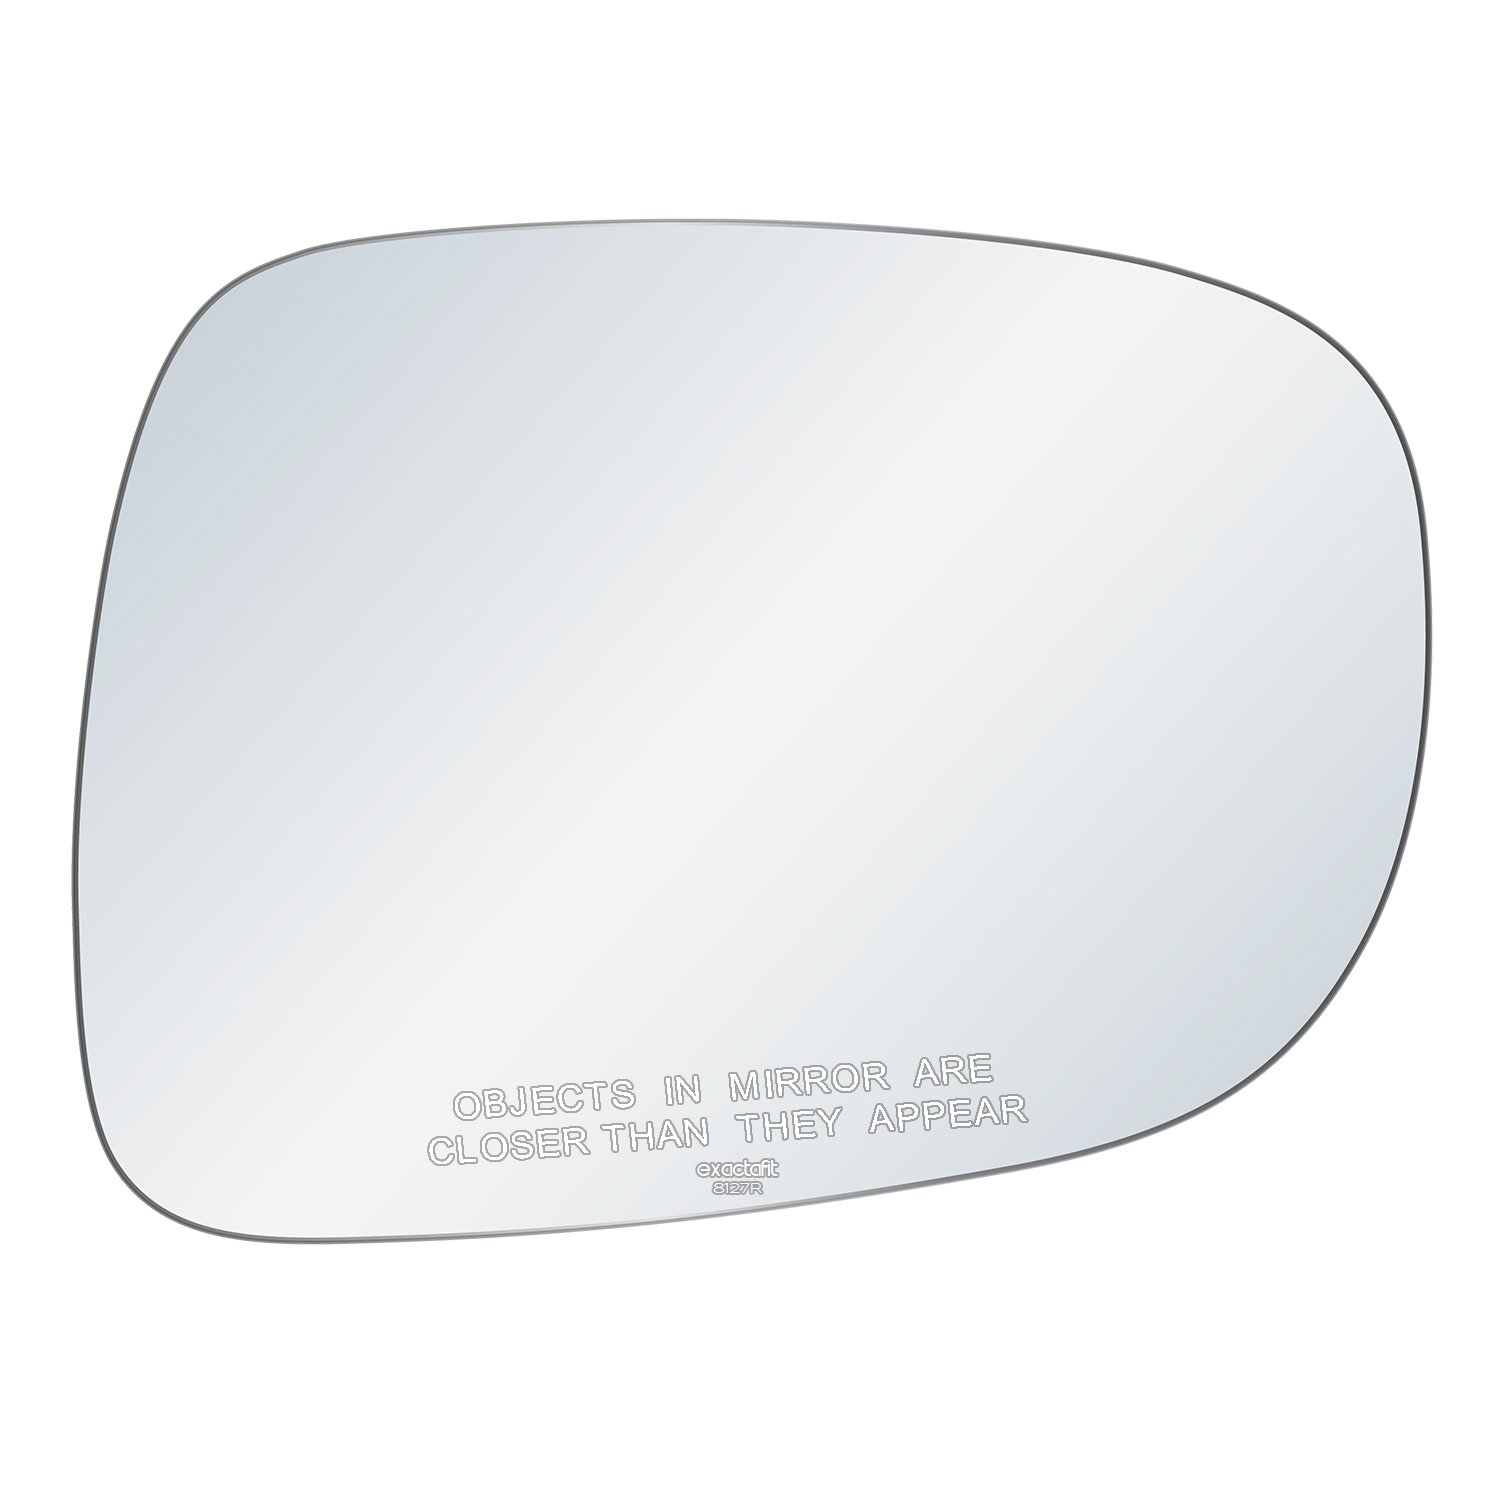 Rugged TUFF exactafit 8127R Replacement Passenger Right Side Mirror Glass Convex Lens fits Lexus ES350 IS250 IS350